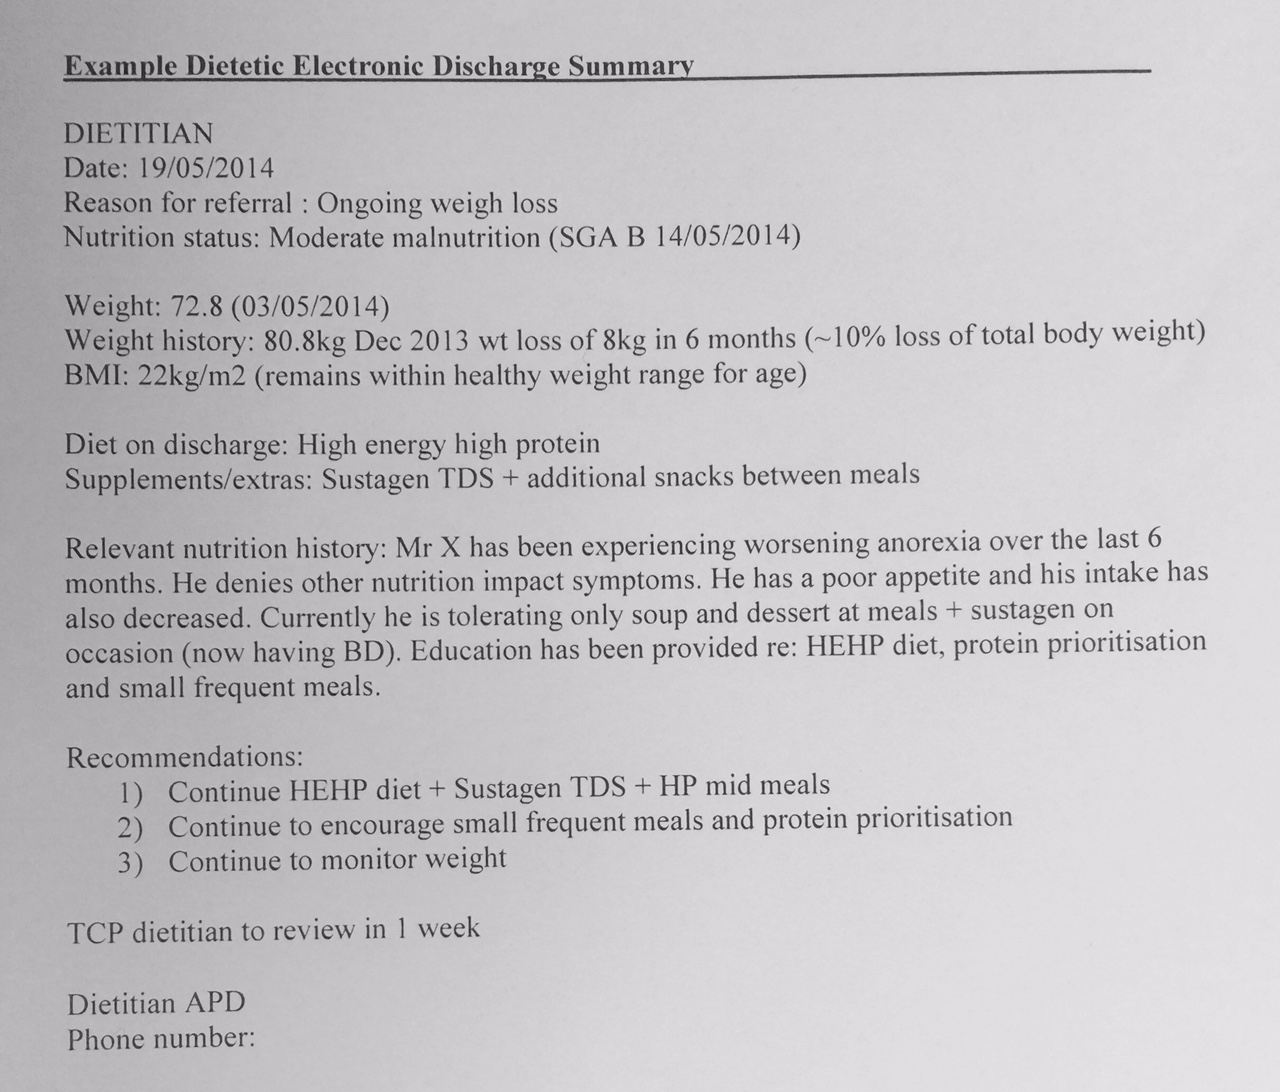 Example Of A Dietetic Electronic Discharge Summary (eDS)